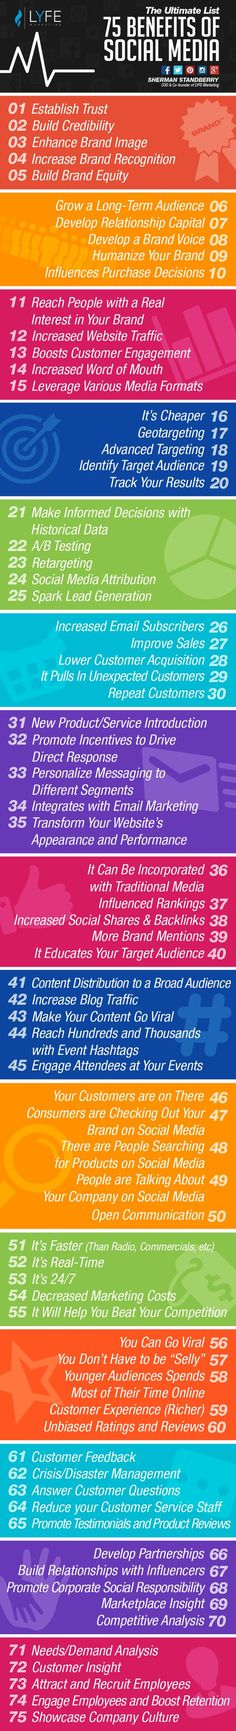 Are you growing your business on social media? Learn ALL of the benefits of social media marketing. Here are 75 key benefits that directly contribute to the ROI of social media! #SocialMedia